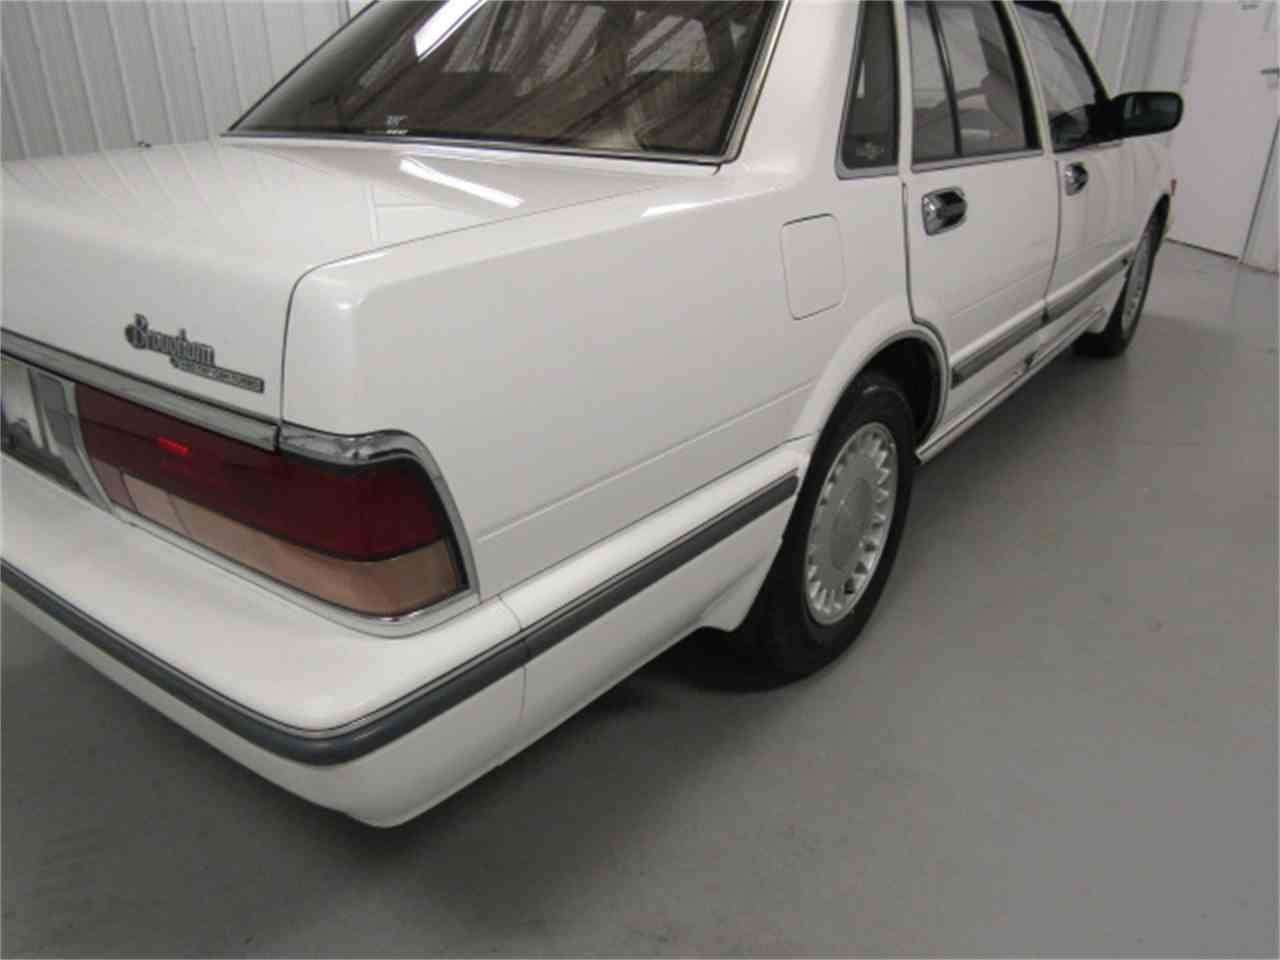 Large Picture of 1991 Nissan Gloria located in Virginia Offered by Duncan Imports & Classic Cars - JZ2U